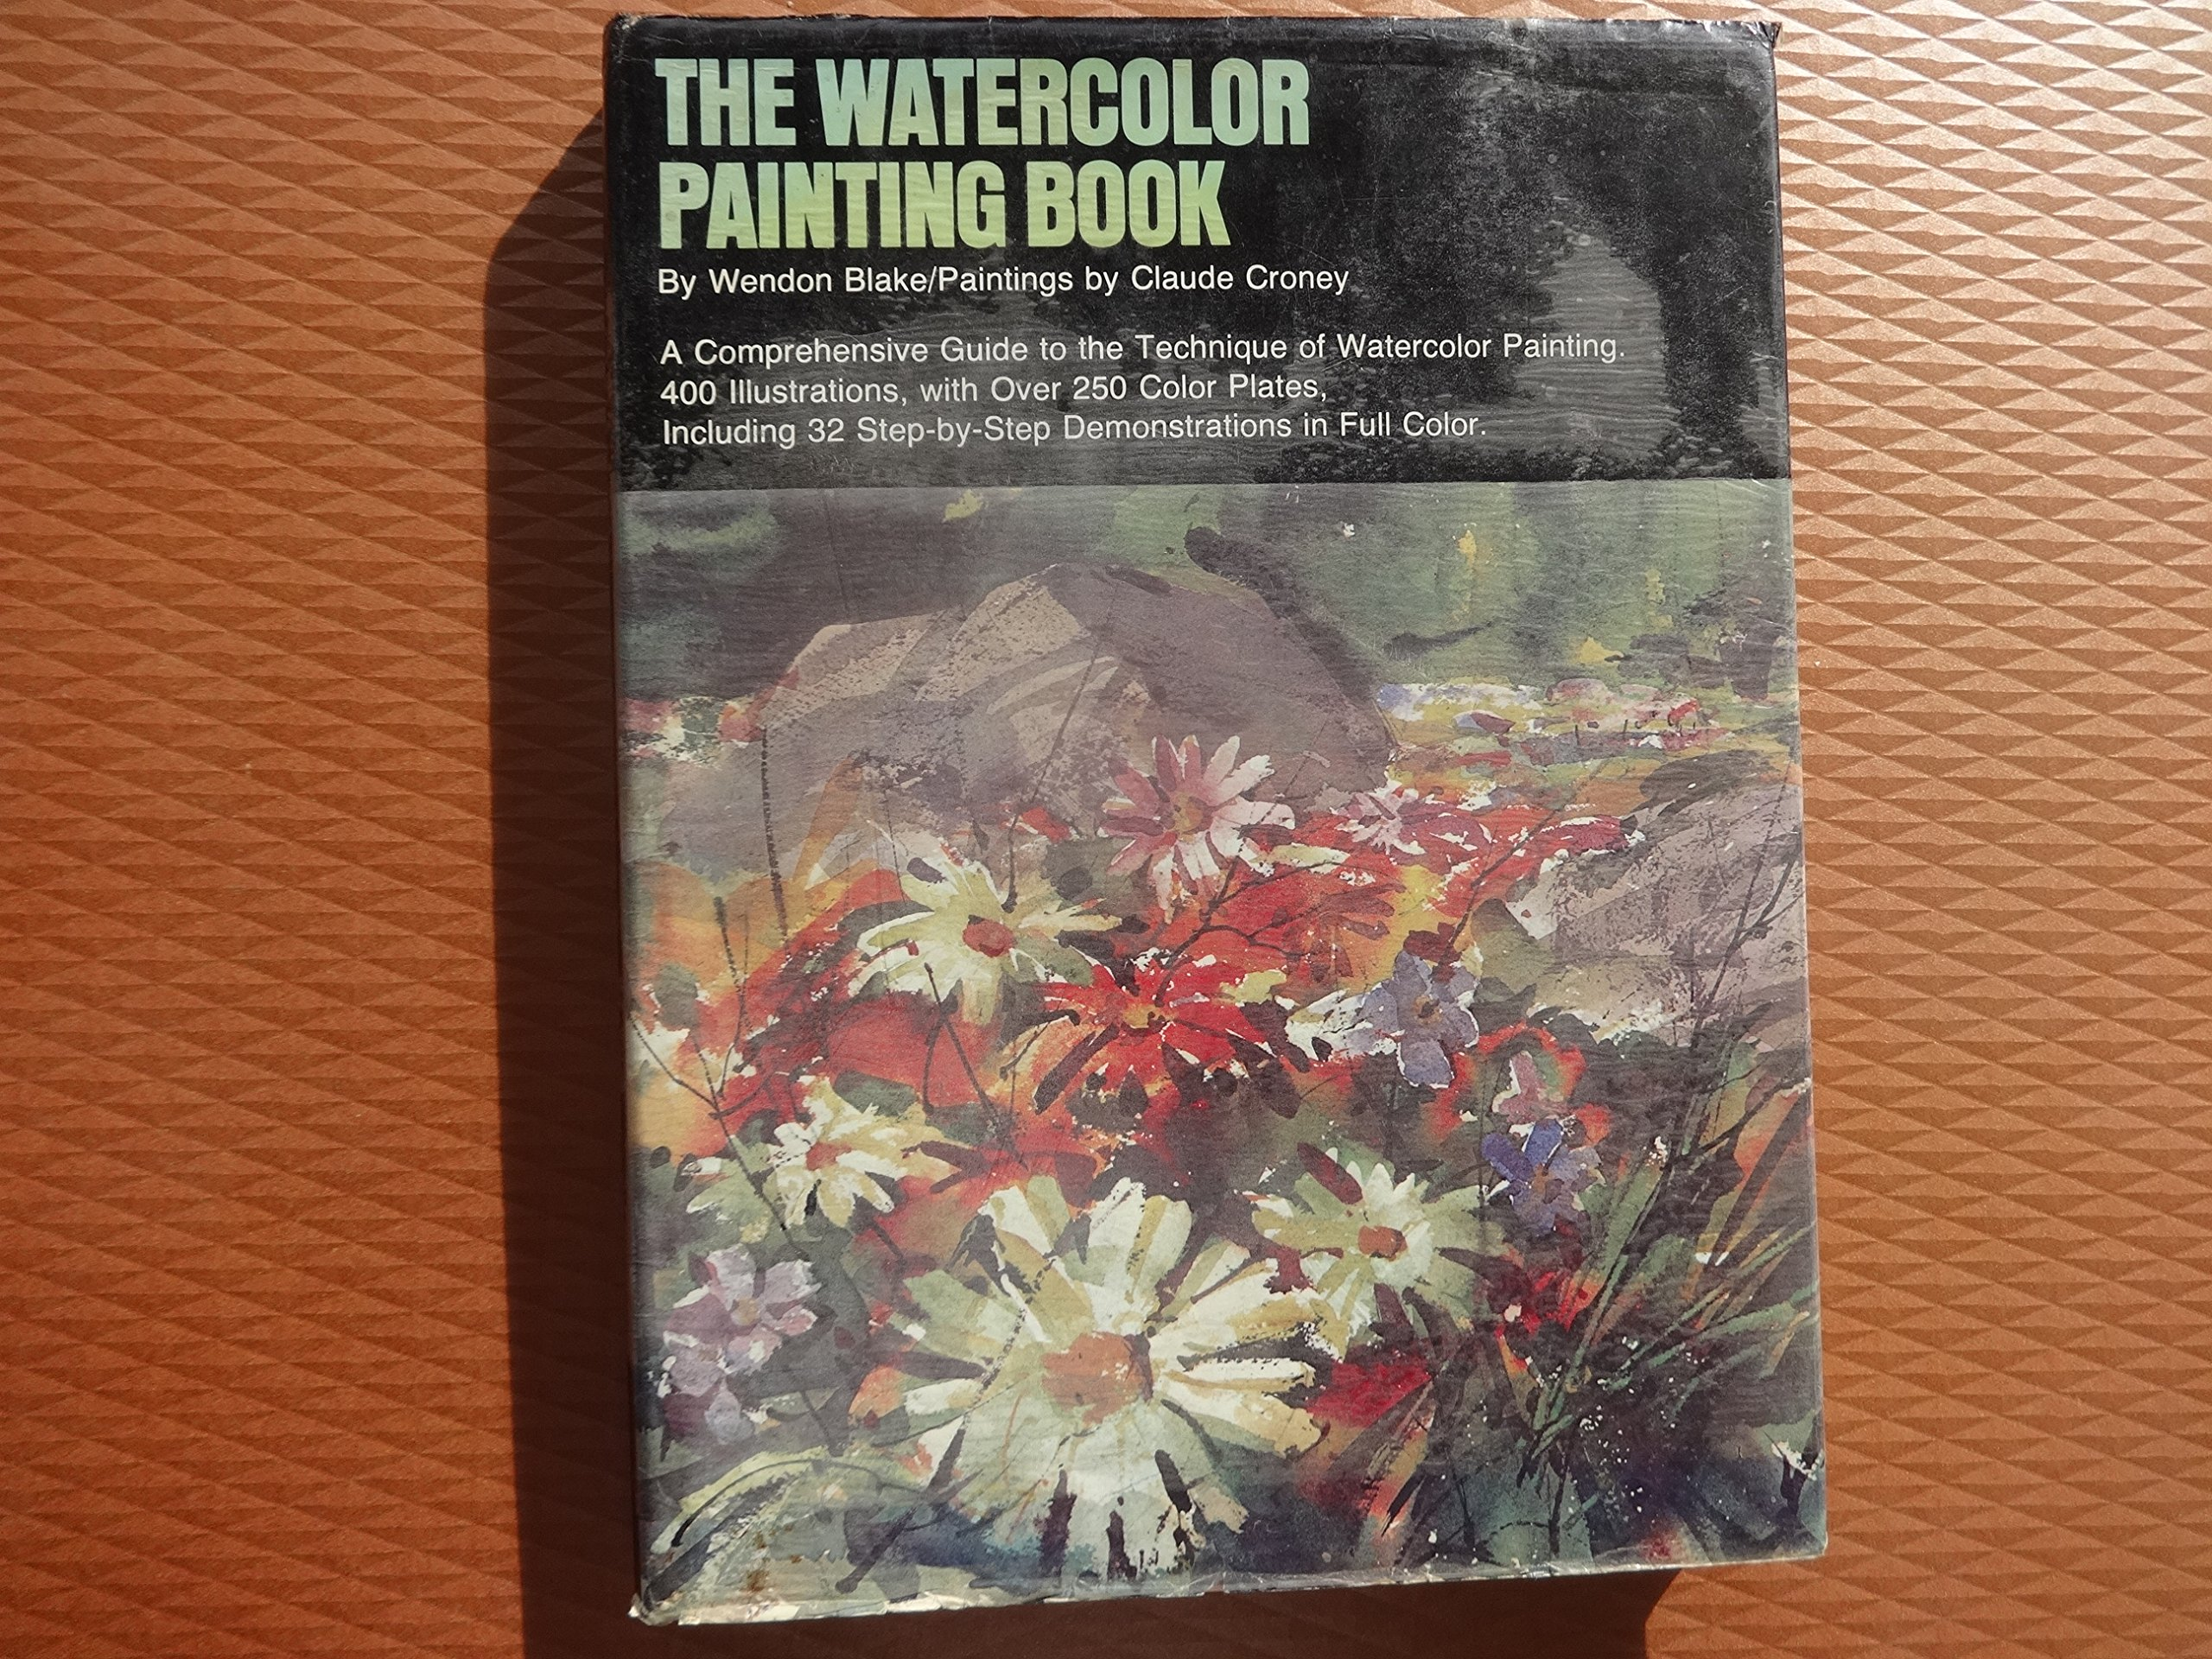 Watercolor books amazon - The Watercolor Painting Book Wendon Blake 9780823056729 Amazon Com Books